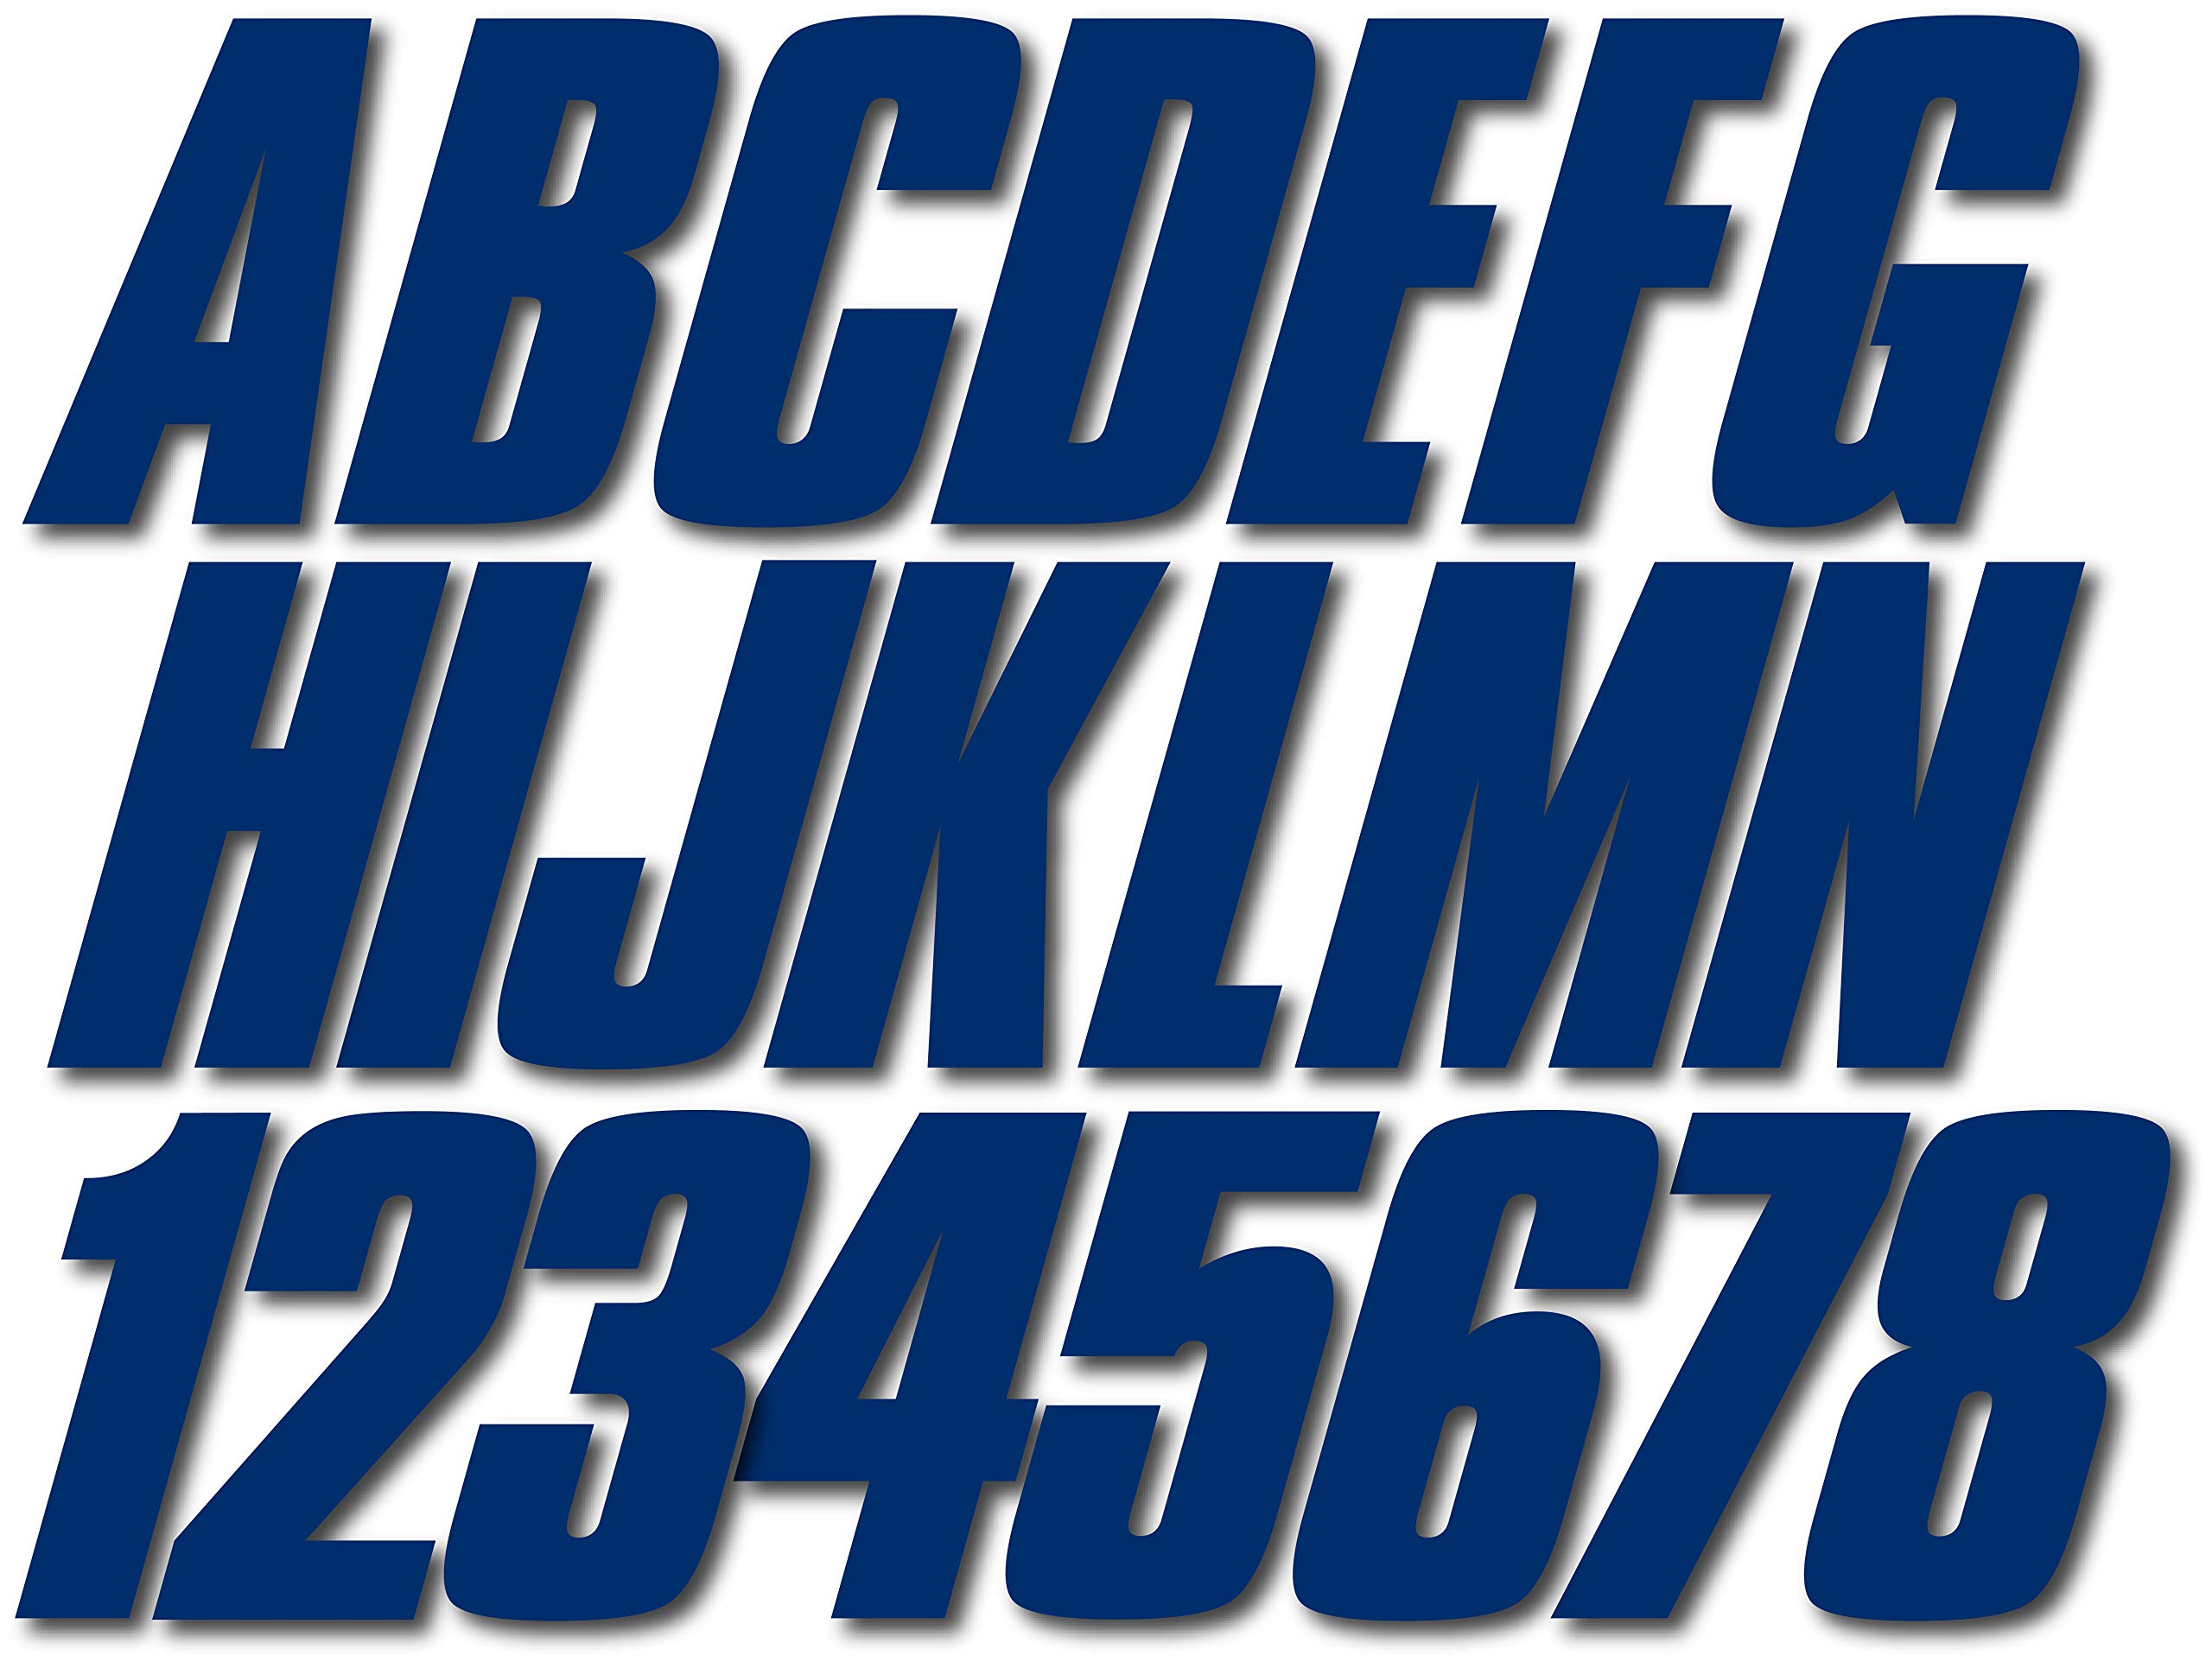 Stiffie Shift Navy 3 ID Kit Alpha-Numeric Registration Identification Numbers Stickers Decals for Boats /& Personal Watercraft